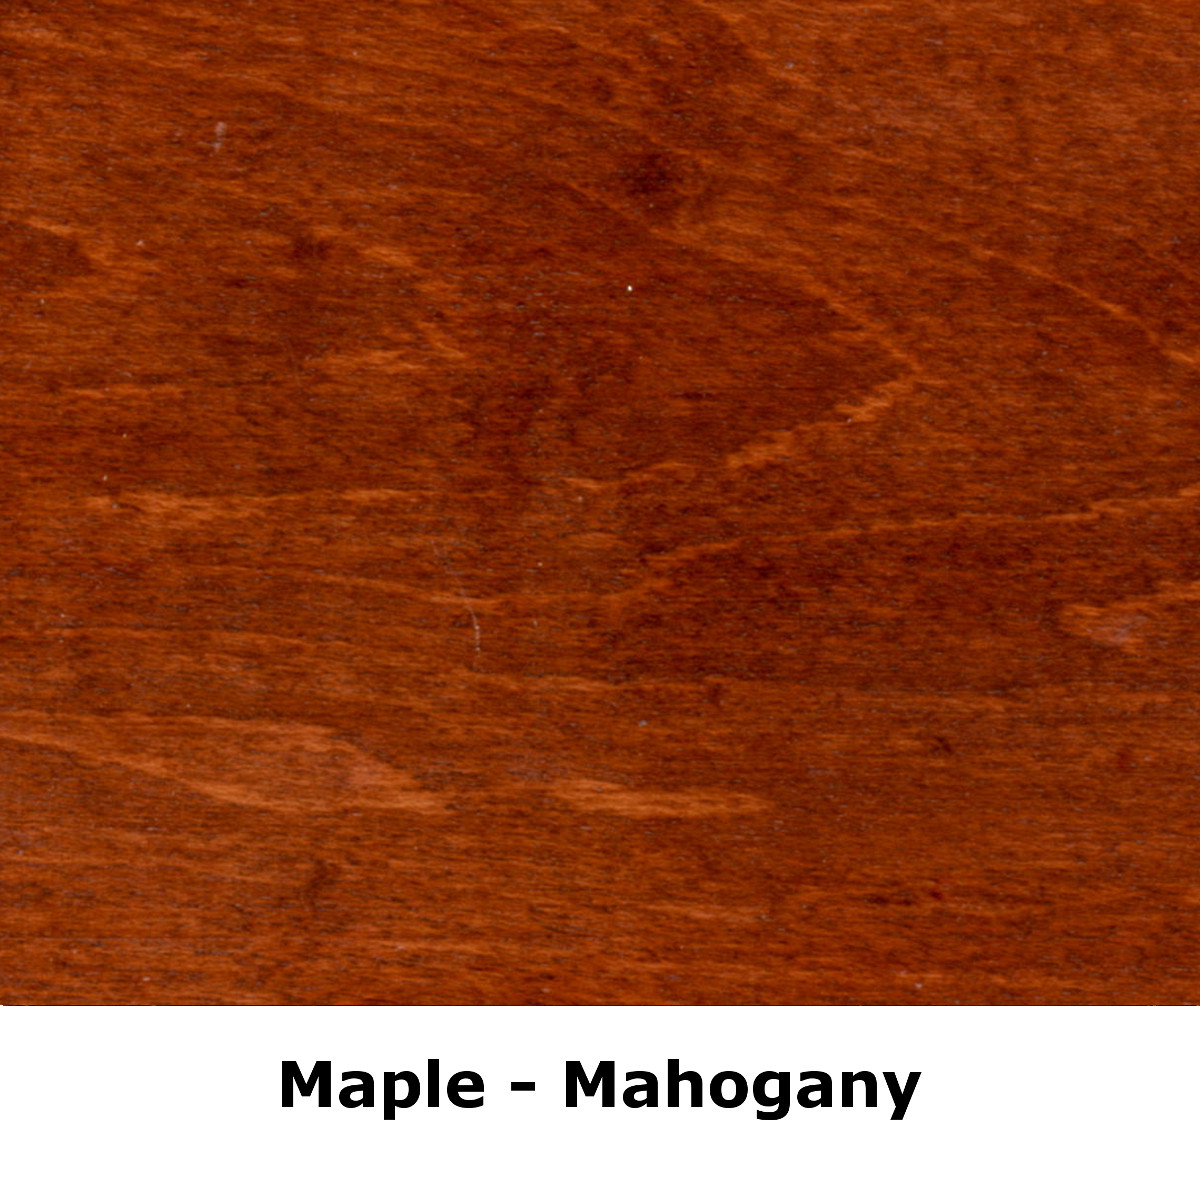 sq maple Mahogany SCANNED REDO.jpeg